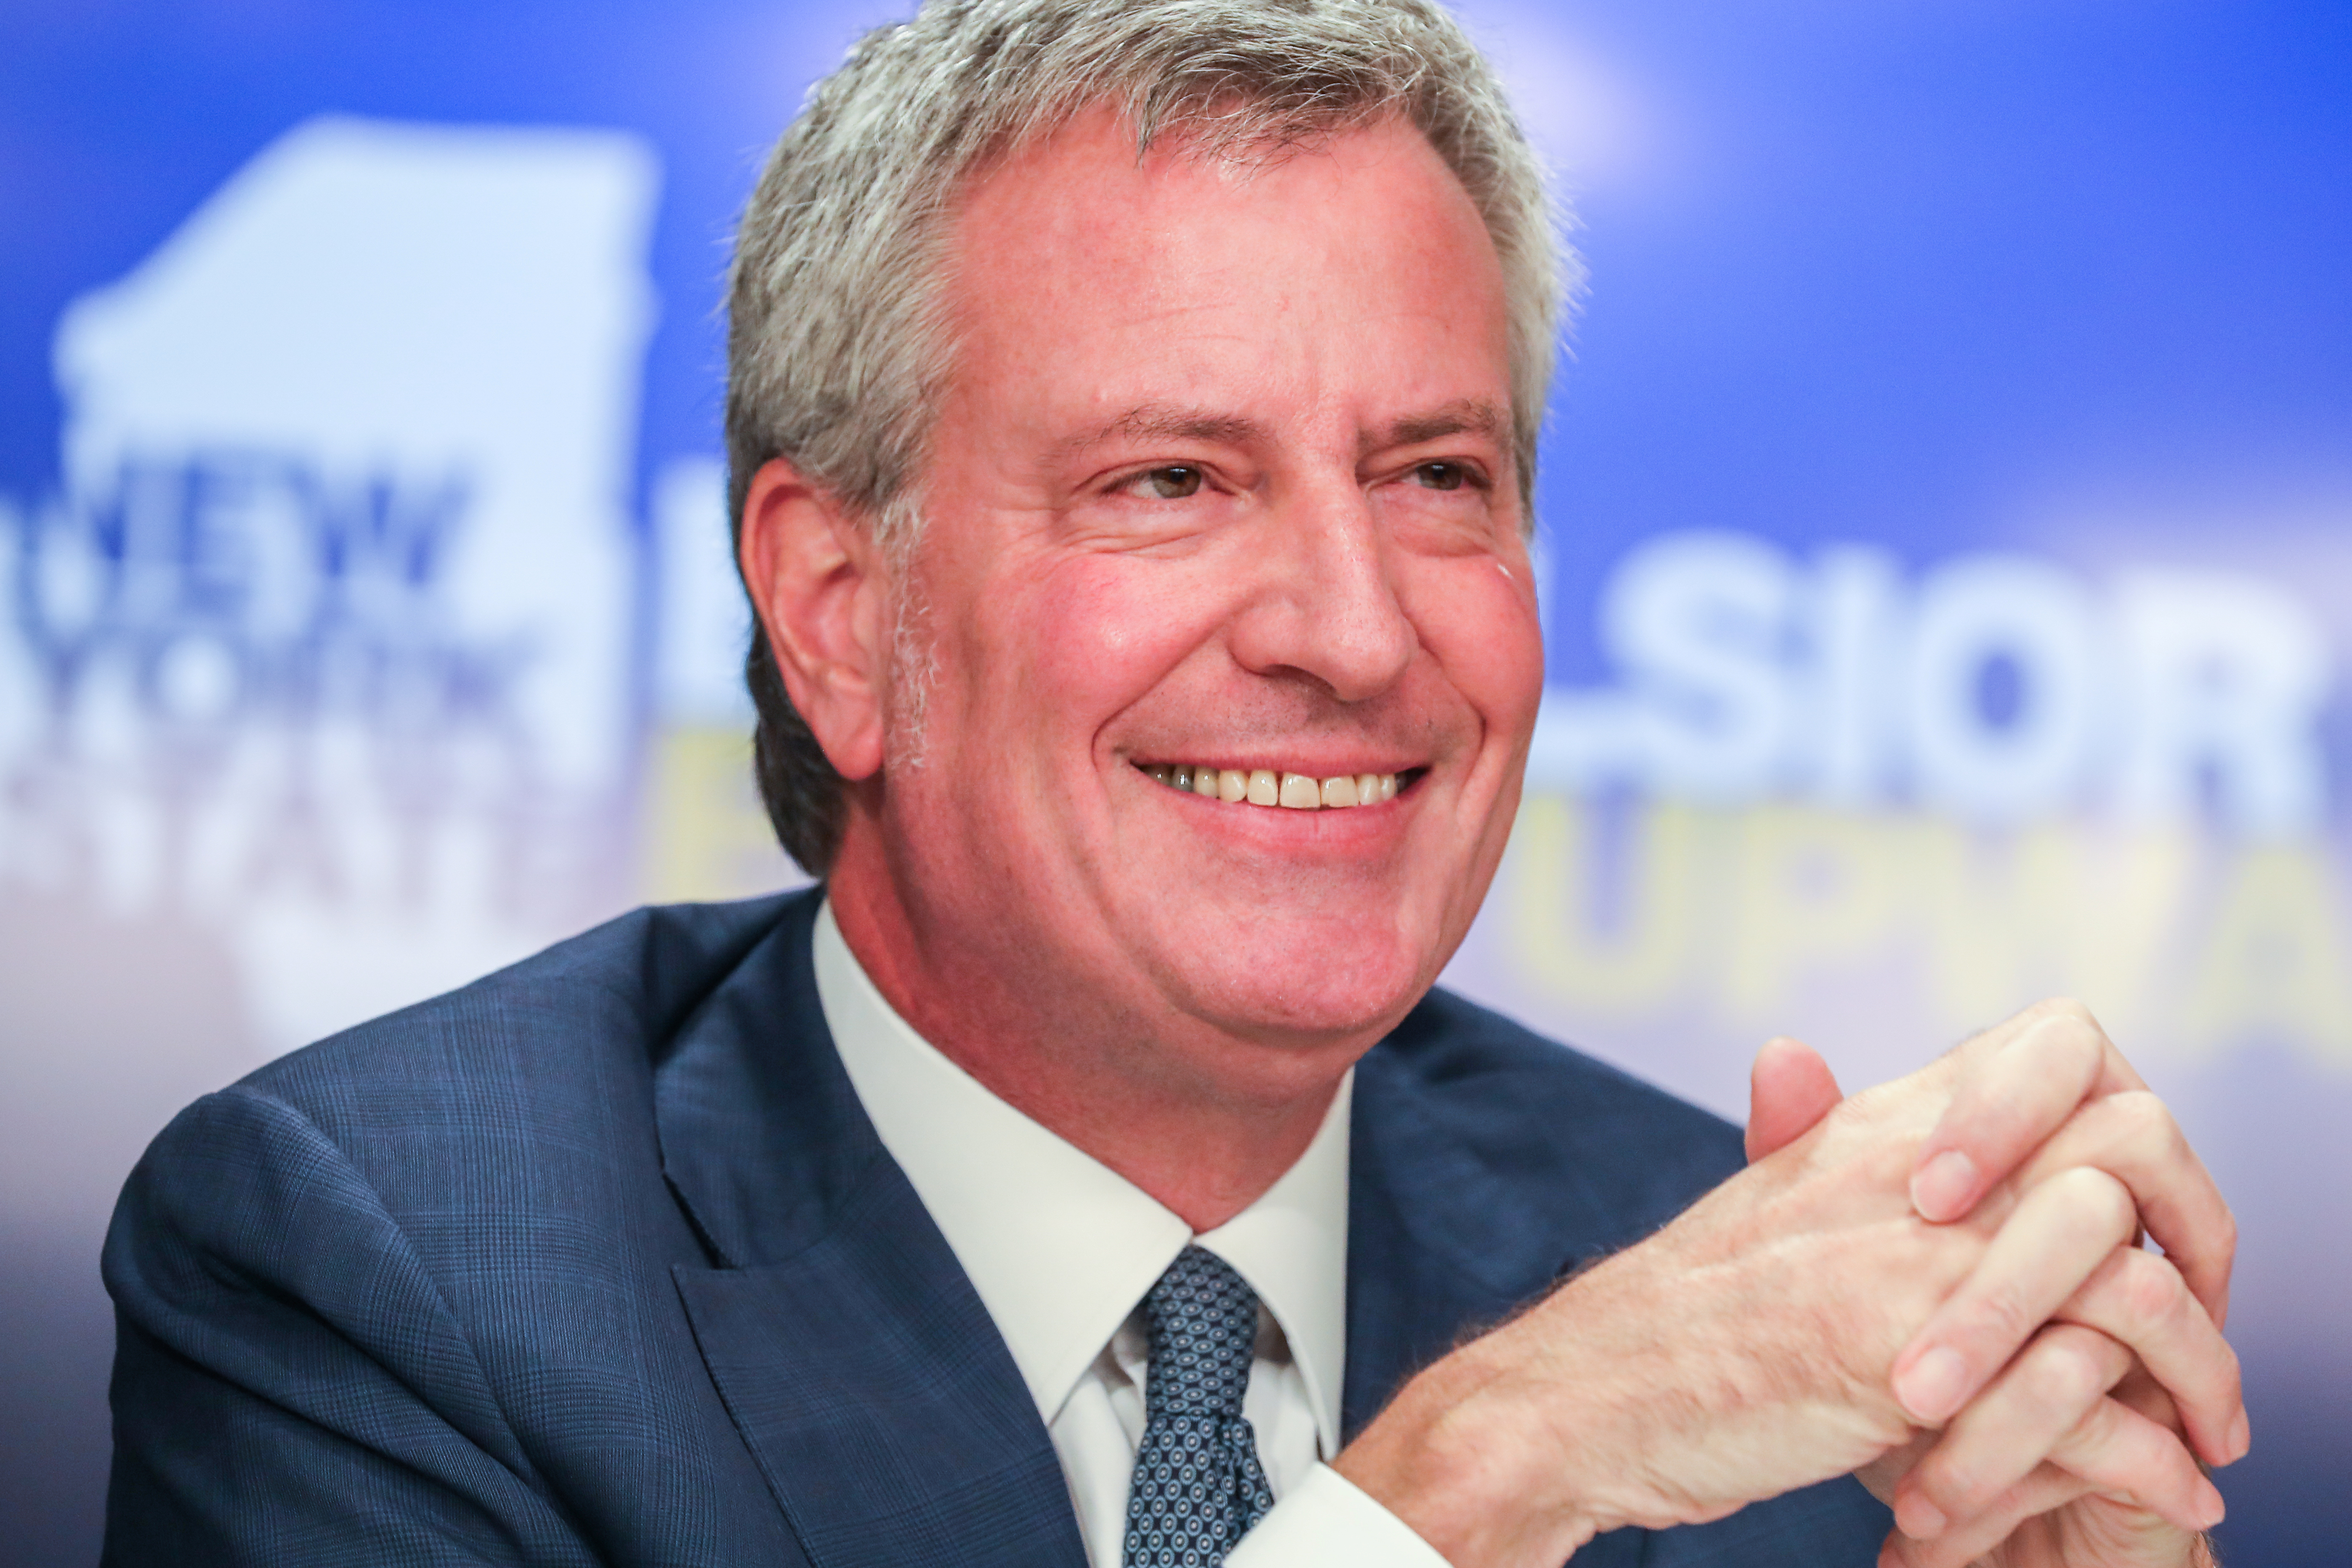 New York Mayor Bill de Blasio speaks during a news conference about Amazon's headquarters expansion to Long Island City in the Queens borough of New York